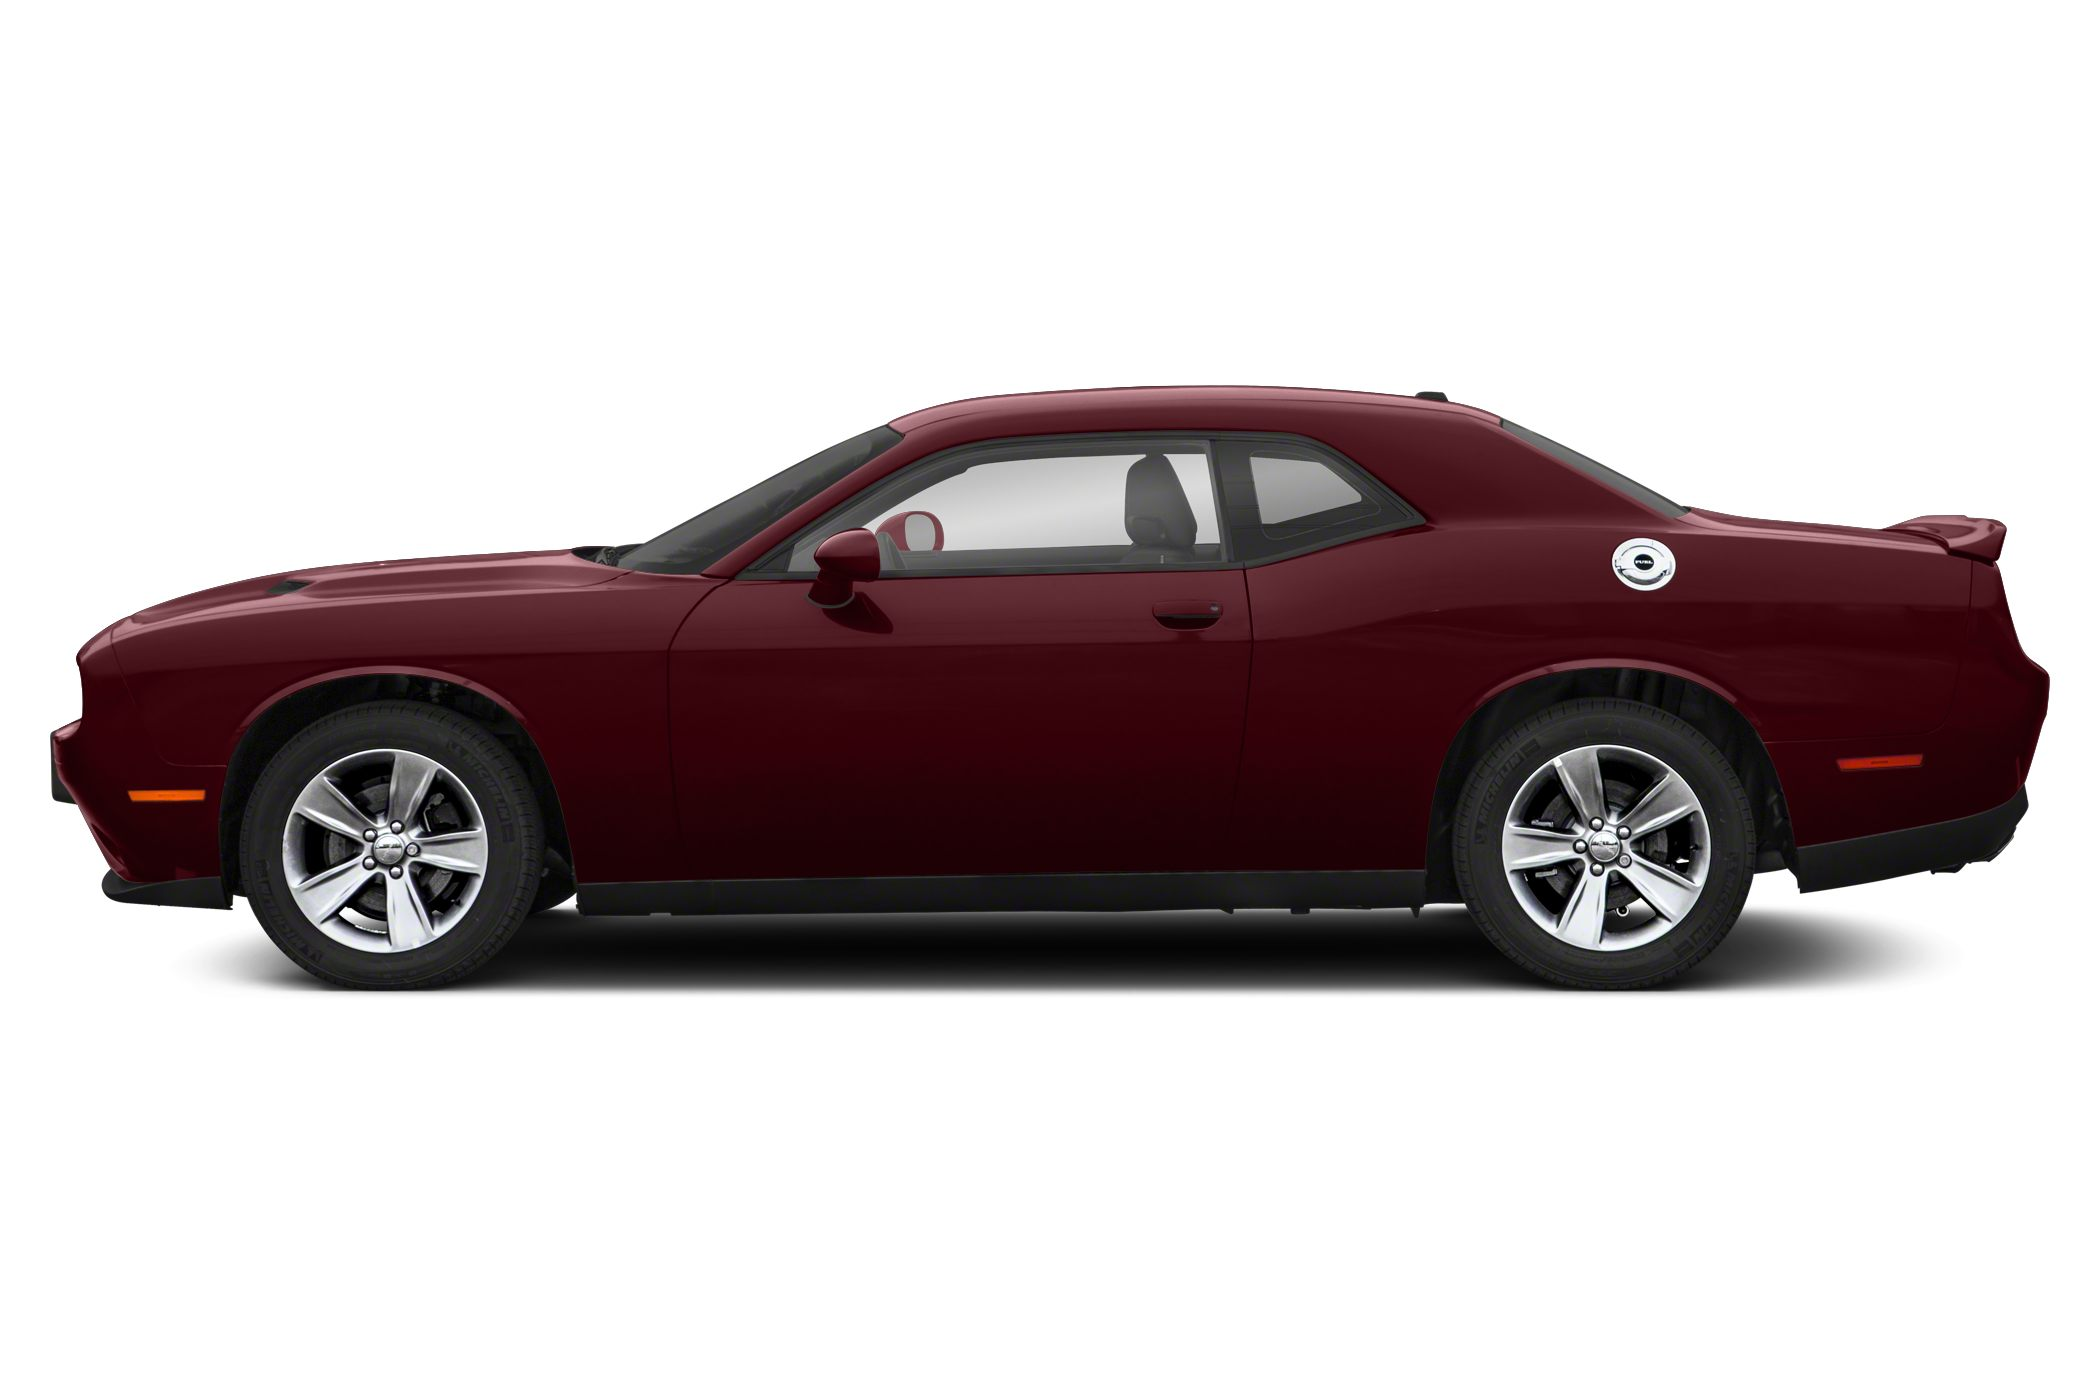 2019 Dodge Challenger Deals Prices Incentives Leases Overview